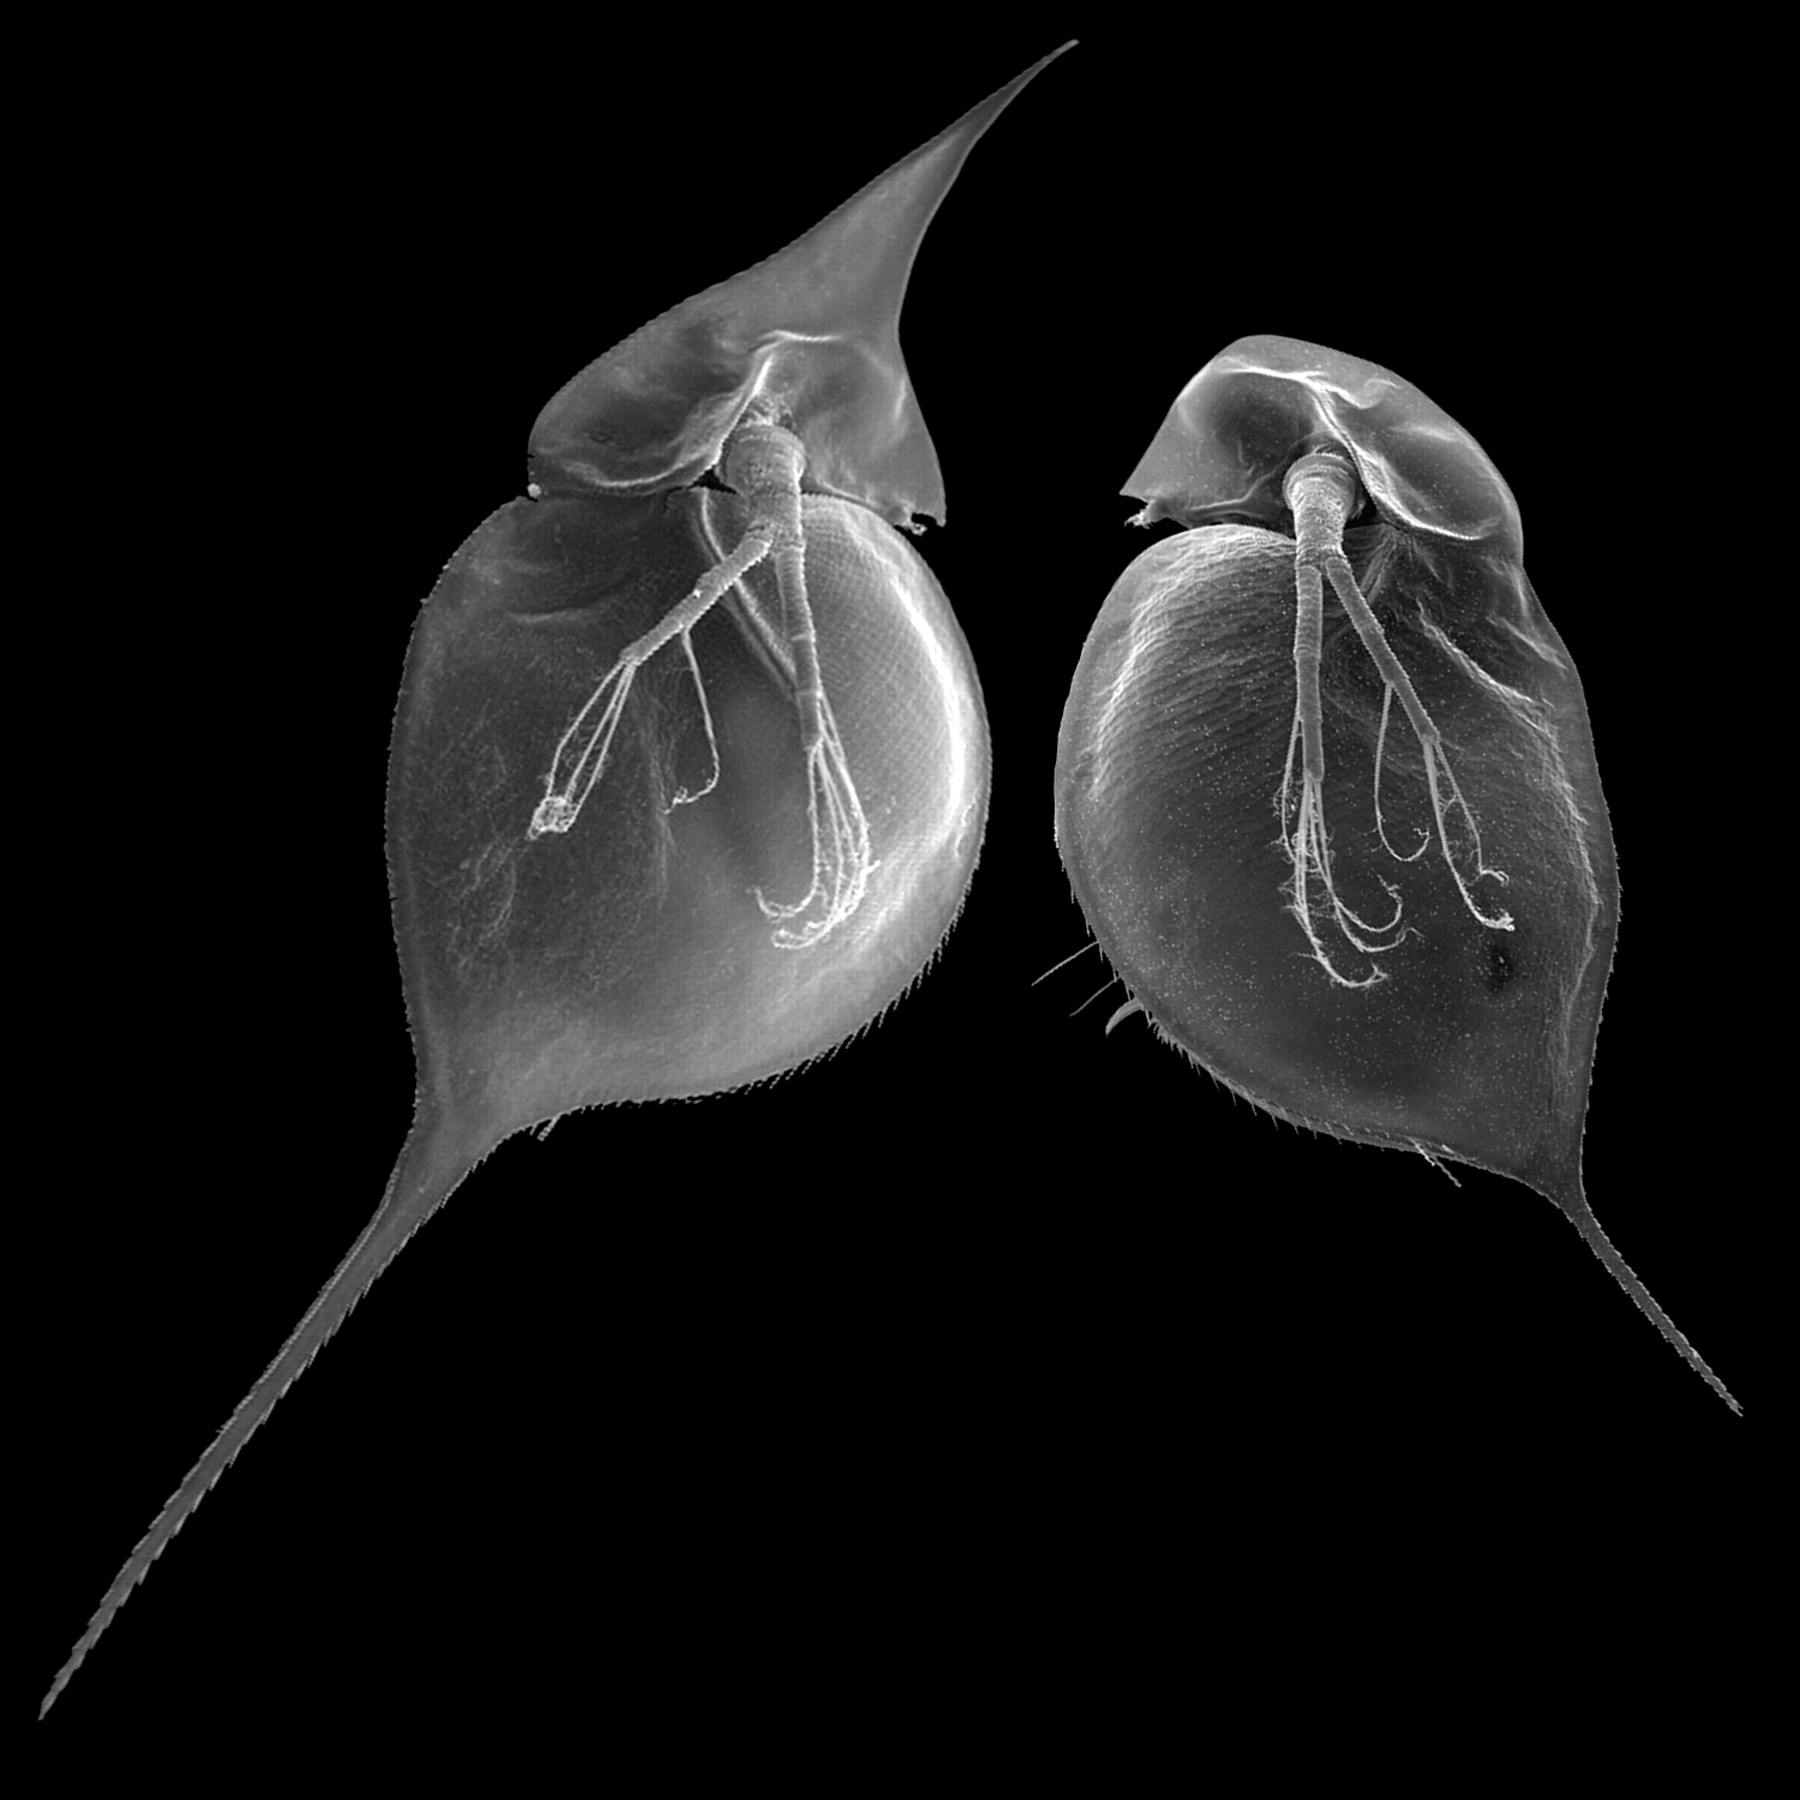 Two individuals of a single clone of the Asian and African water flea, Daphnia lumholtzi. The individual on the left was exposed to chemical cues from predaceous fish (induced); the individual on the right was not (control). The sharp helmet and extended tail spine of the induced morph protectD. lumholtzi from fish predators. The uninduced form was formerly described as a different species (D. monacha Brehm 1912). Green (83), in an accurate and prophetic study, related the occurrence of both morphs to differences in fish predation. The induction of this morphological defense has now been implicated as a key factor in the success of D. lumholtzi invading North America (84). Figure and caption from [Agrawal 2001](https://doi.org/10.1126/science.1060701).